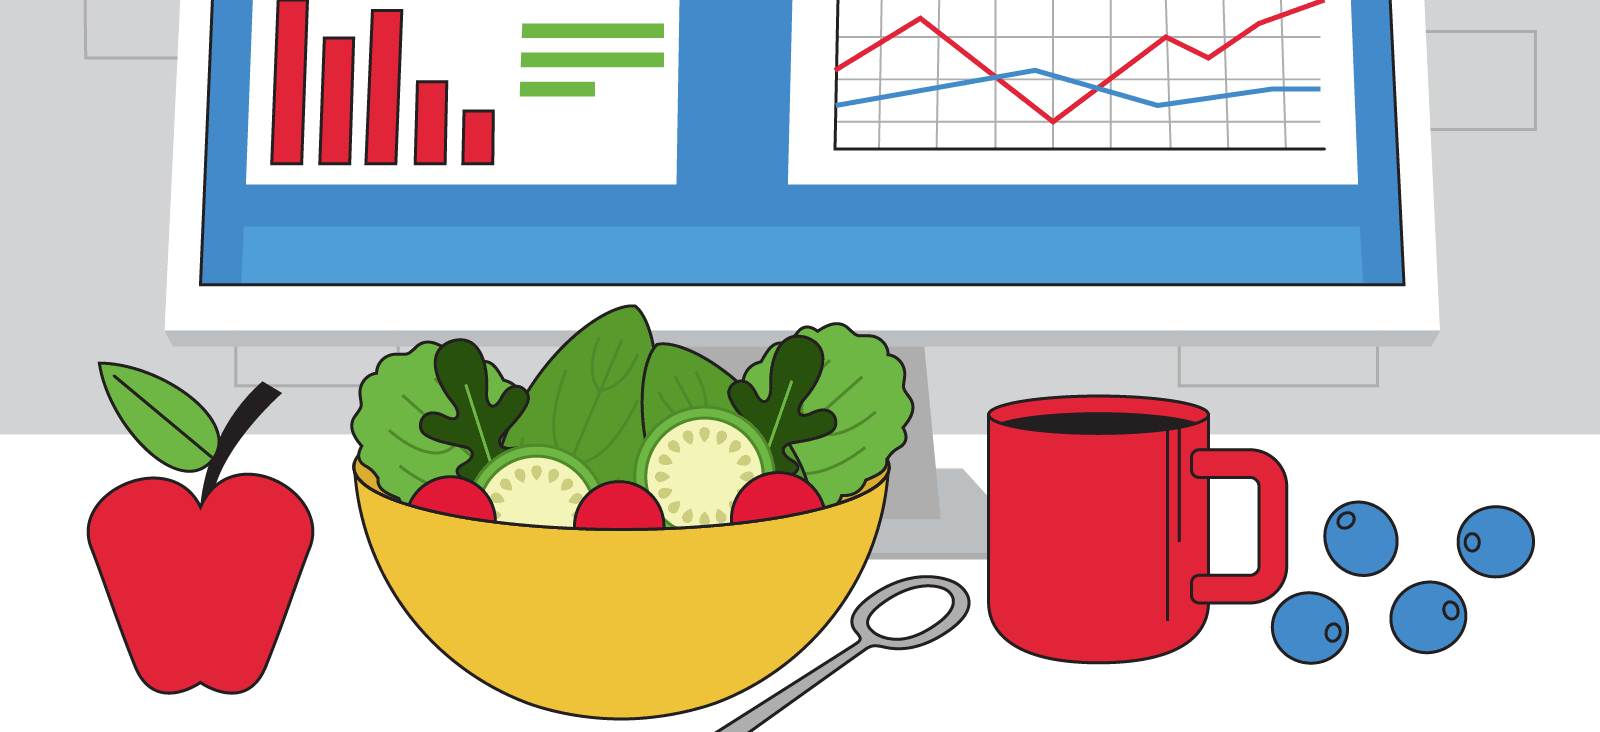 Catering clipart healthy eating. Meals and snacks for